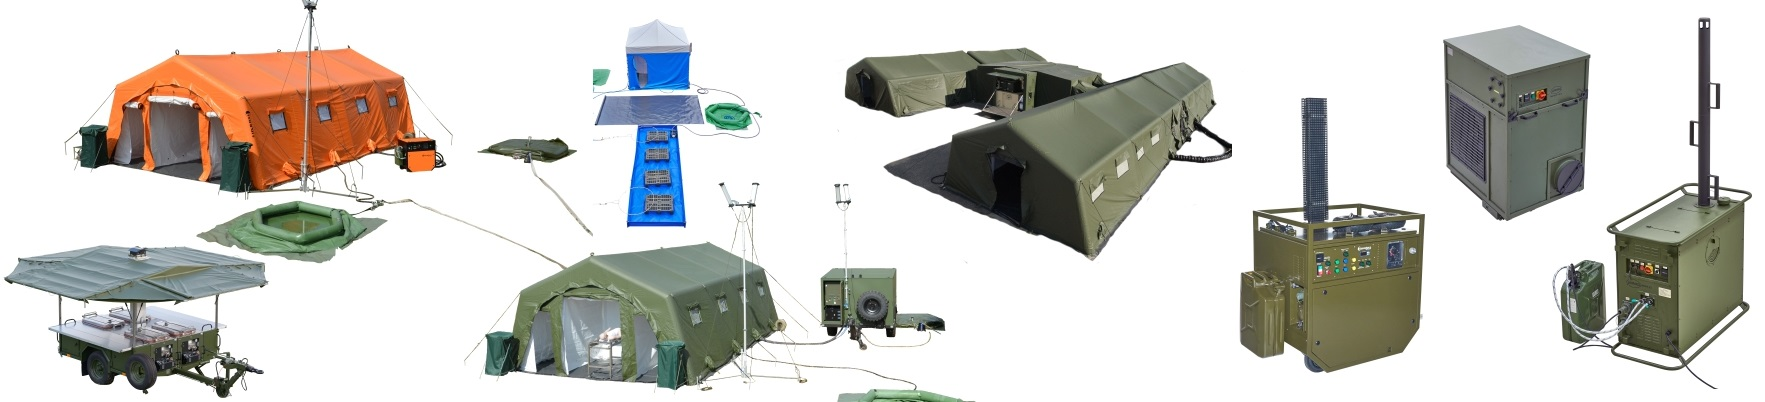 Field Deployable Support Systems